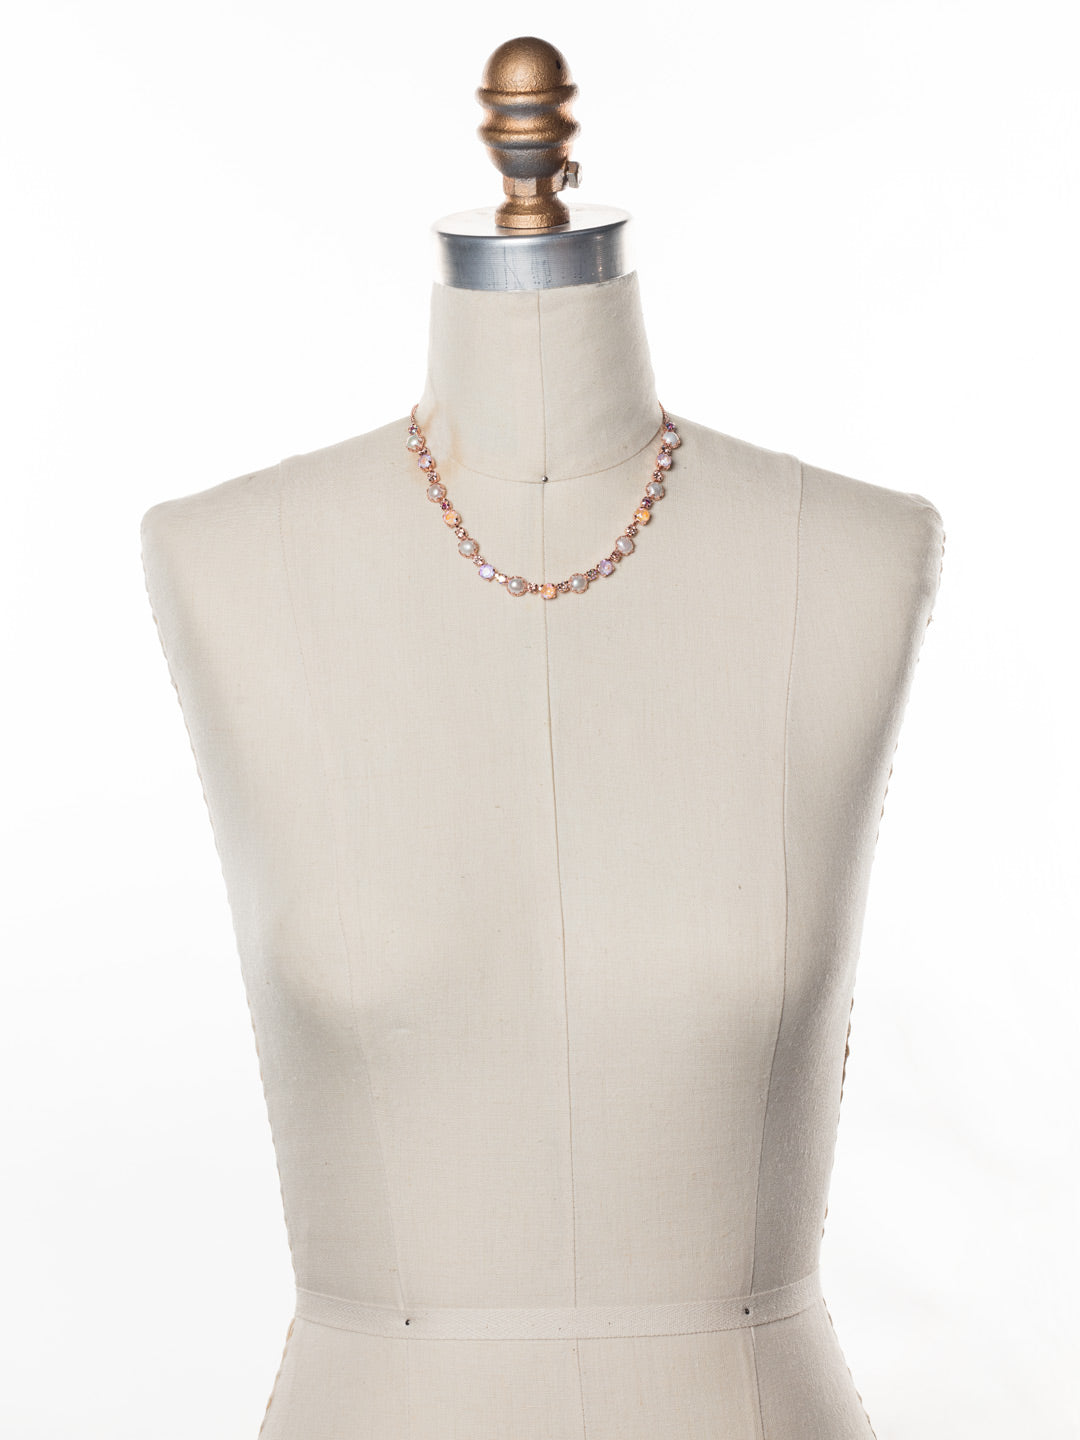 Emmanuella Tennis Necklace - NES12RGLVP